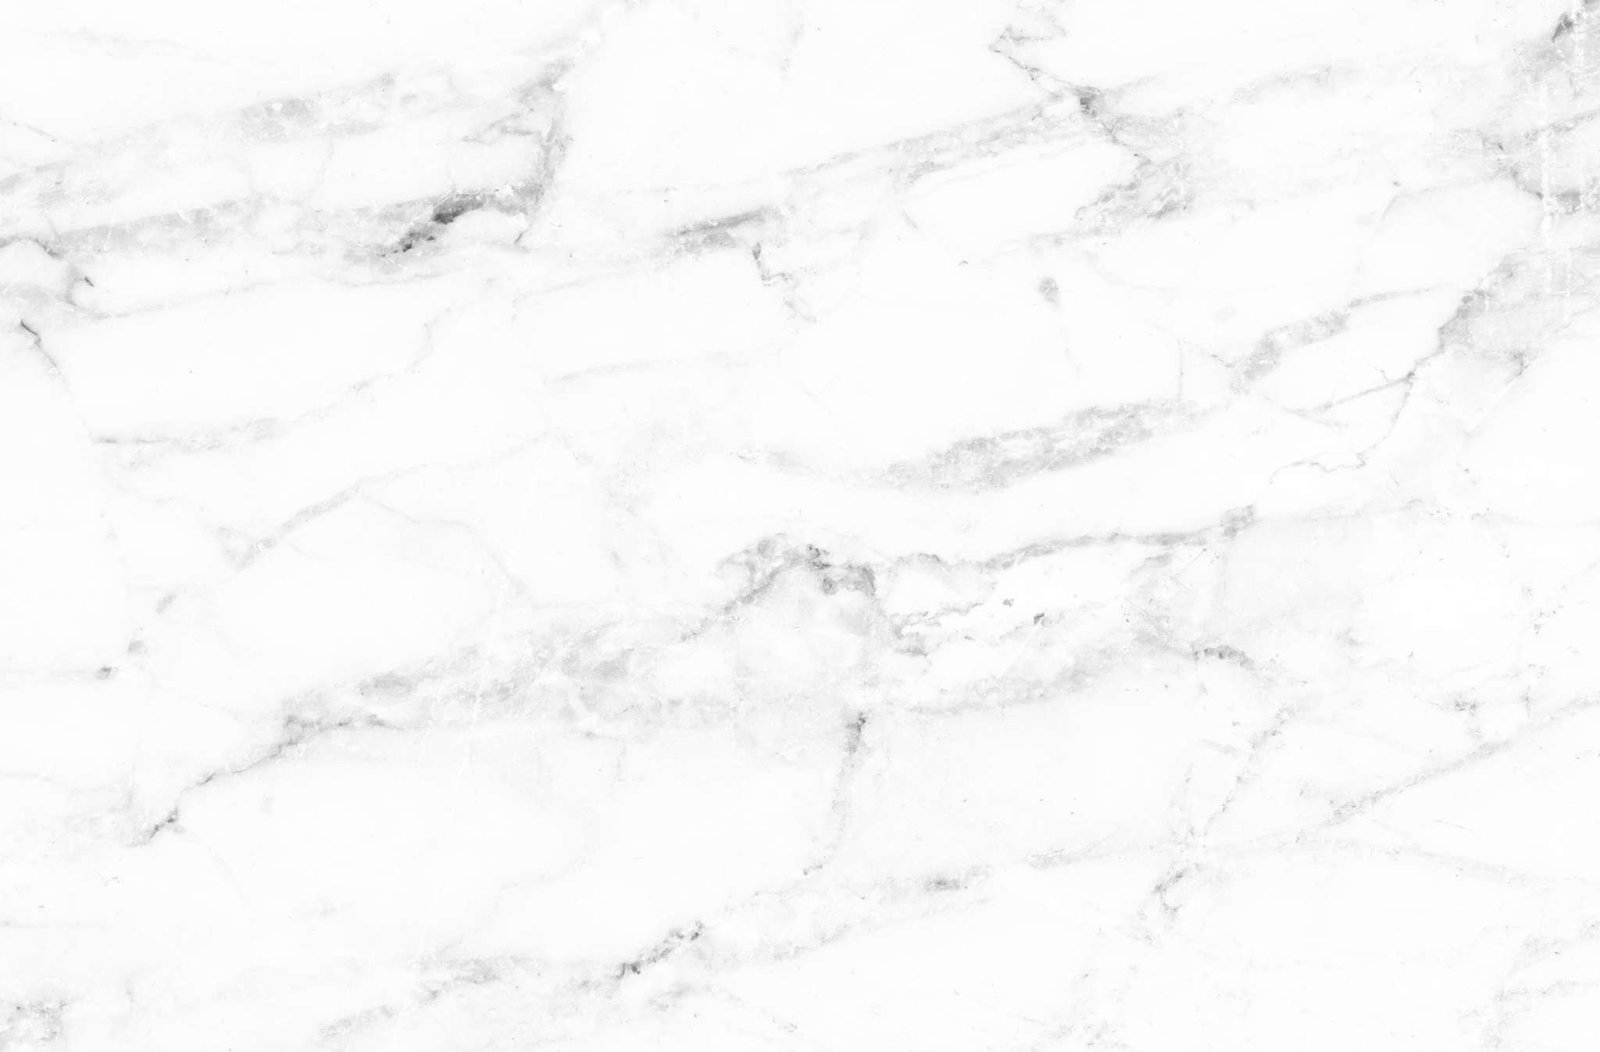 awesome-and-beautiful-white-marble-background-2-minimalist-white-marble-background-with-ideas-inspiration-46042